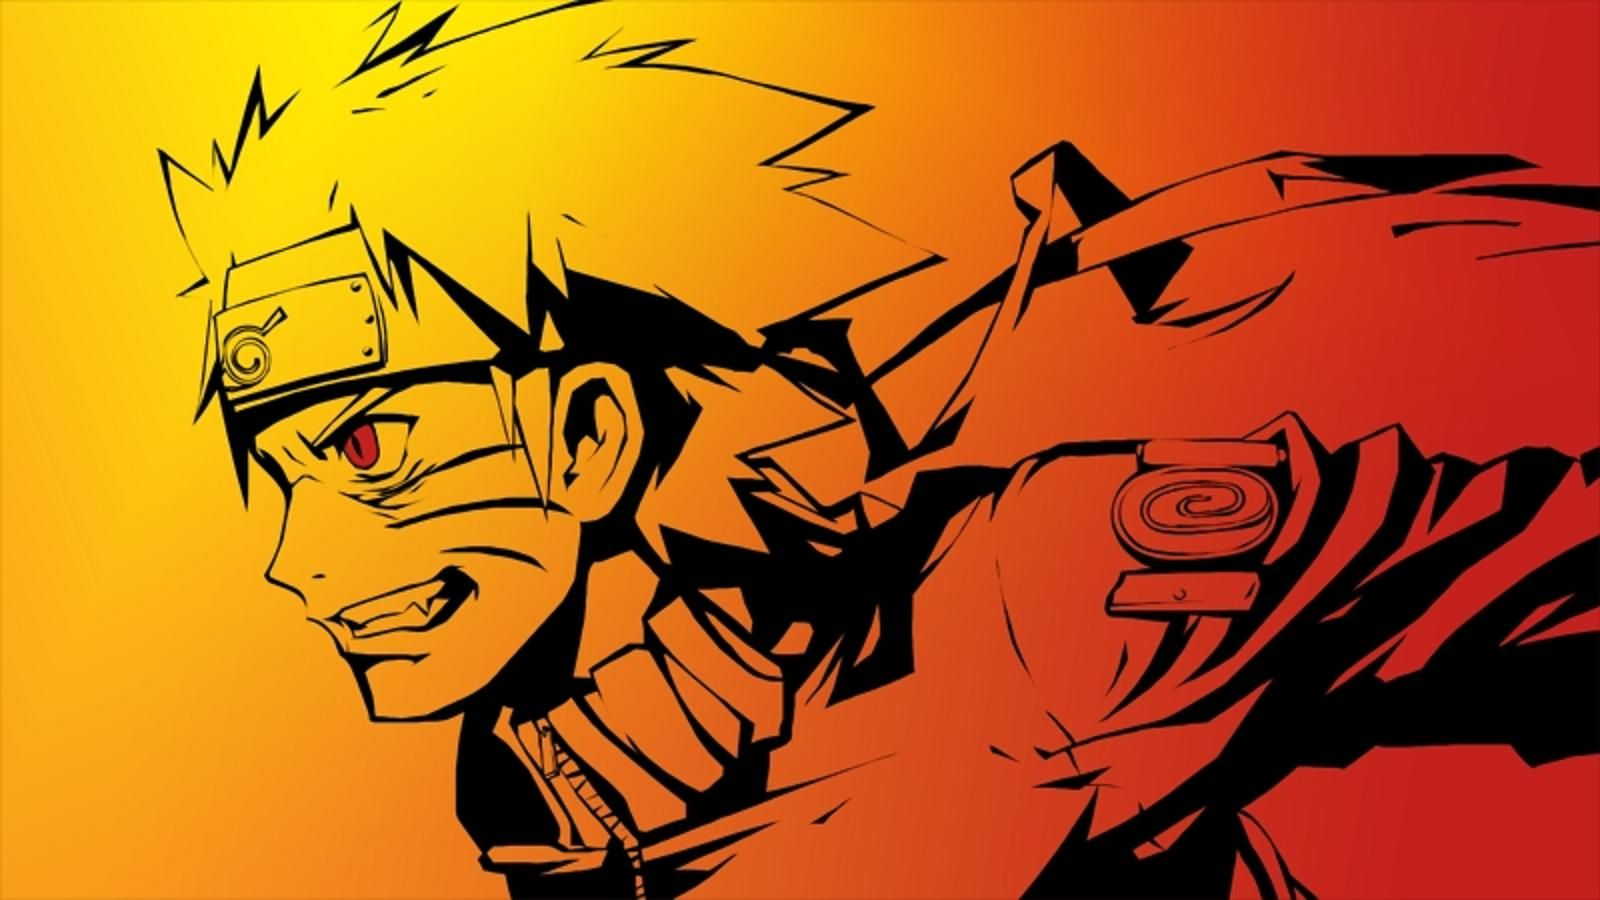 Naruto Uzumaki This Looks Fun To Draw Naruto Sketch Naruto Uzumaki Cartoon Wallpaper Hd